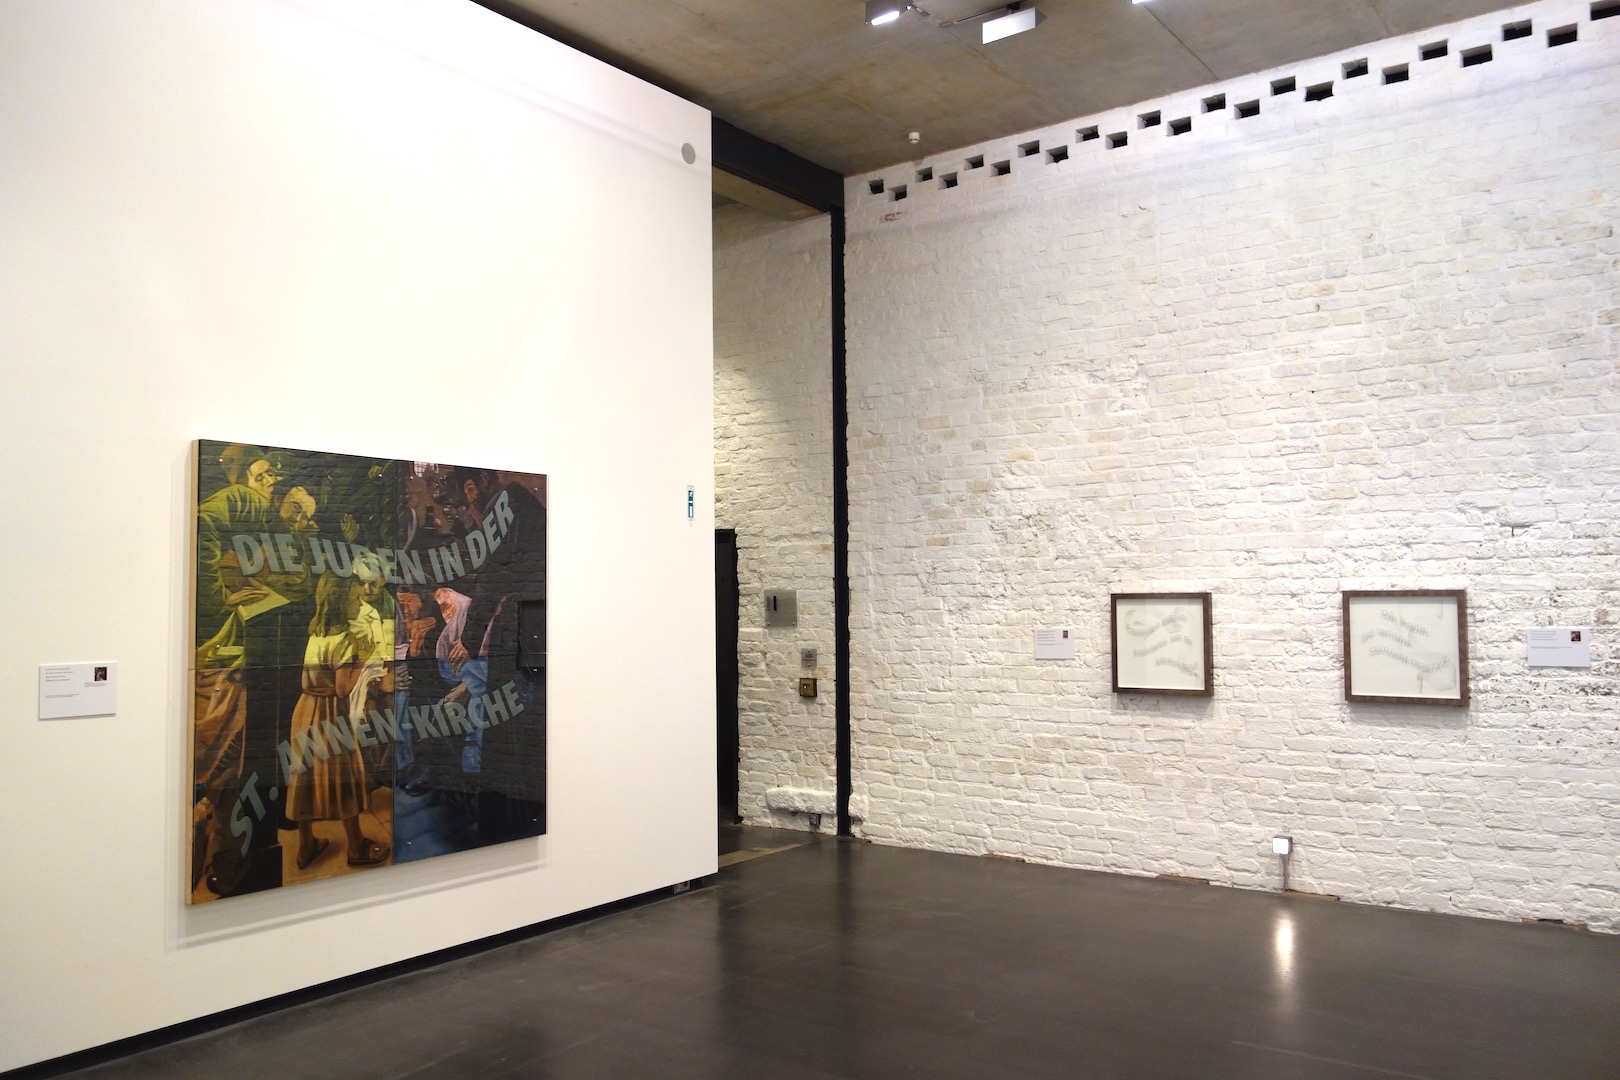 Ground Floor Gallery, Kunsthalle St. Annen